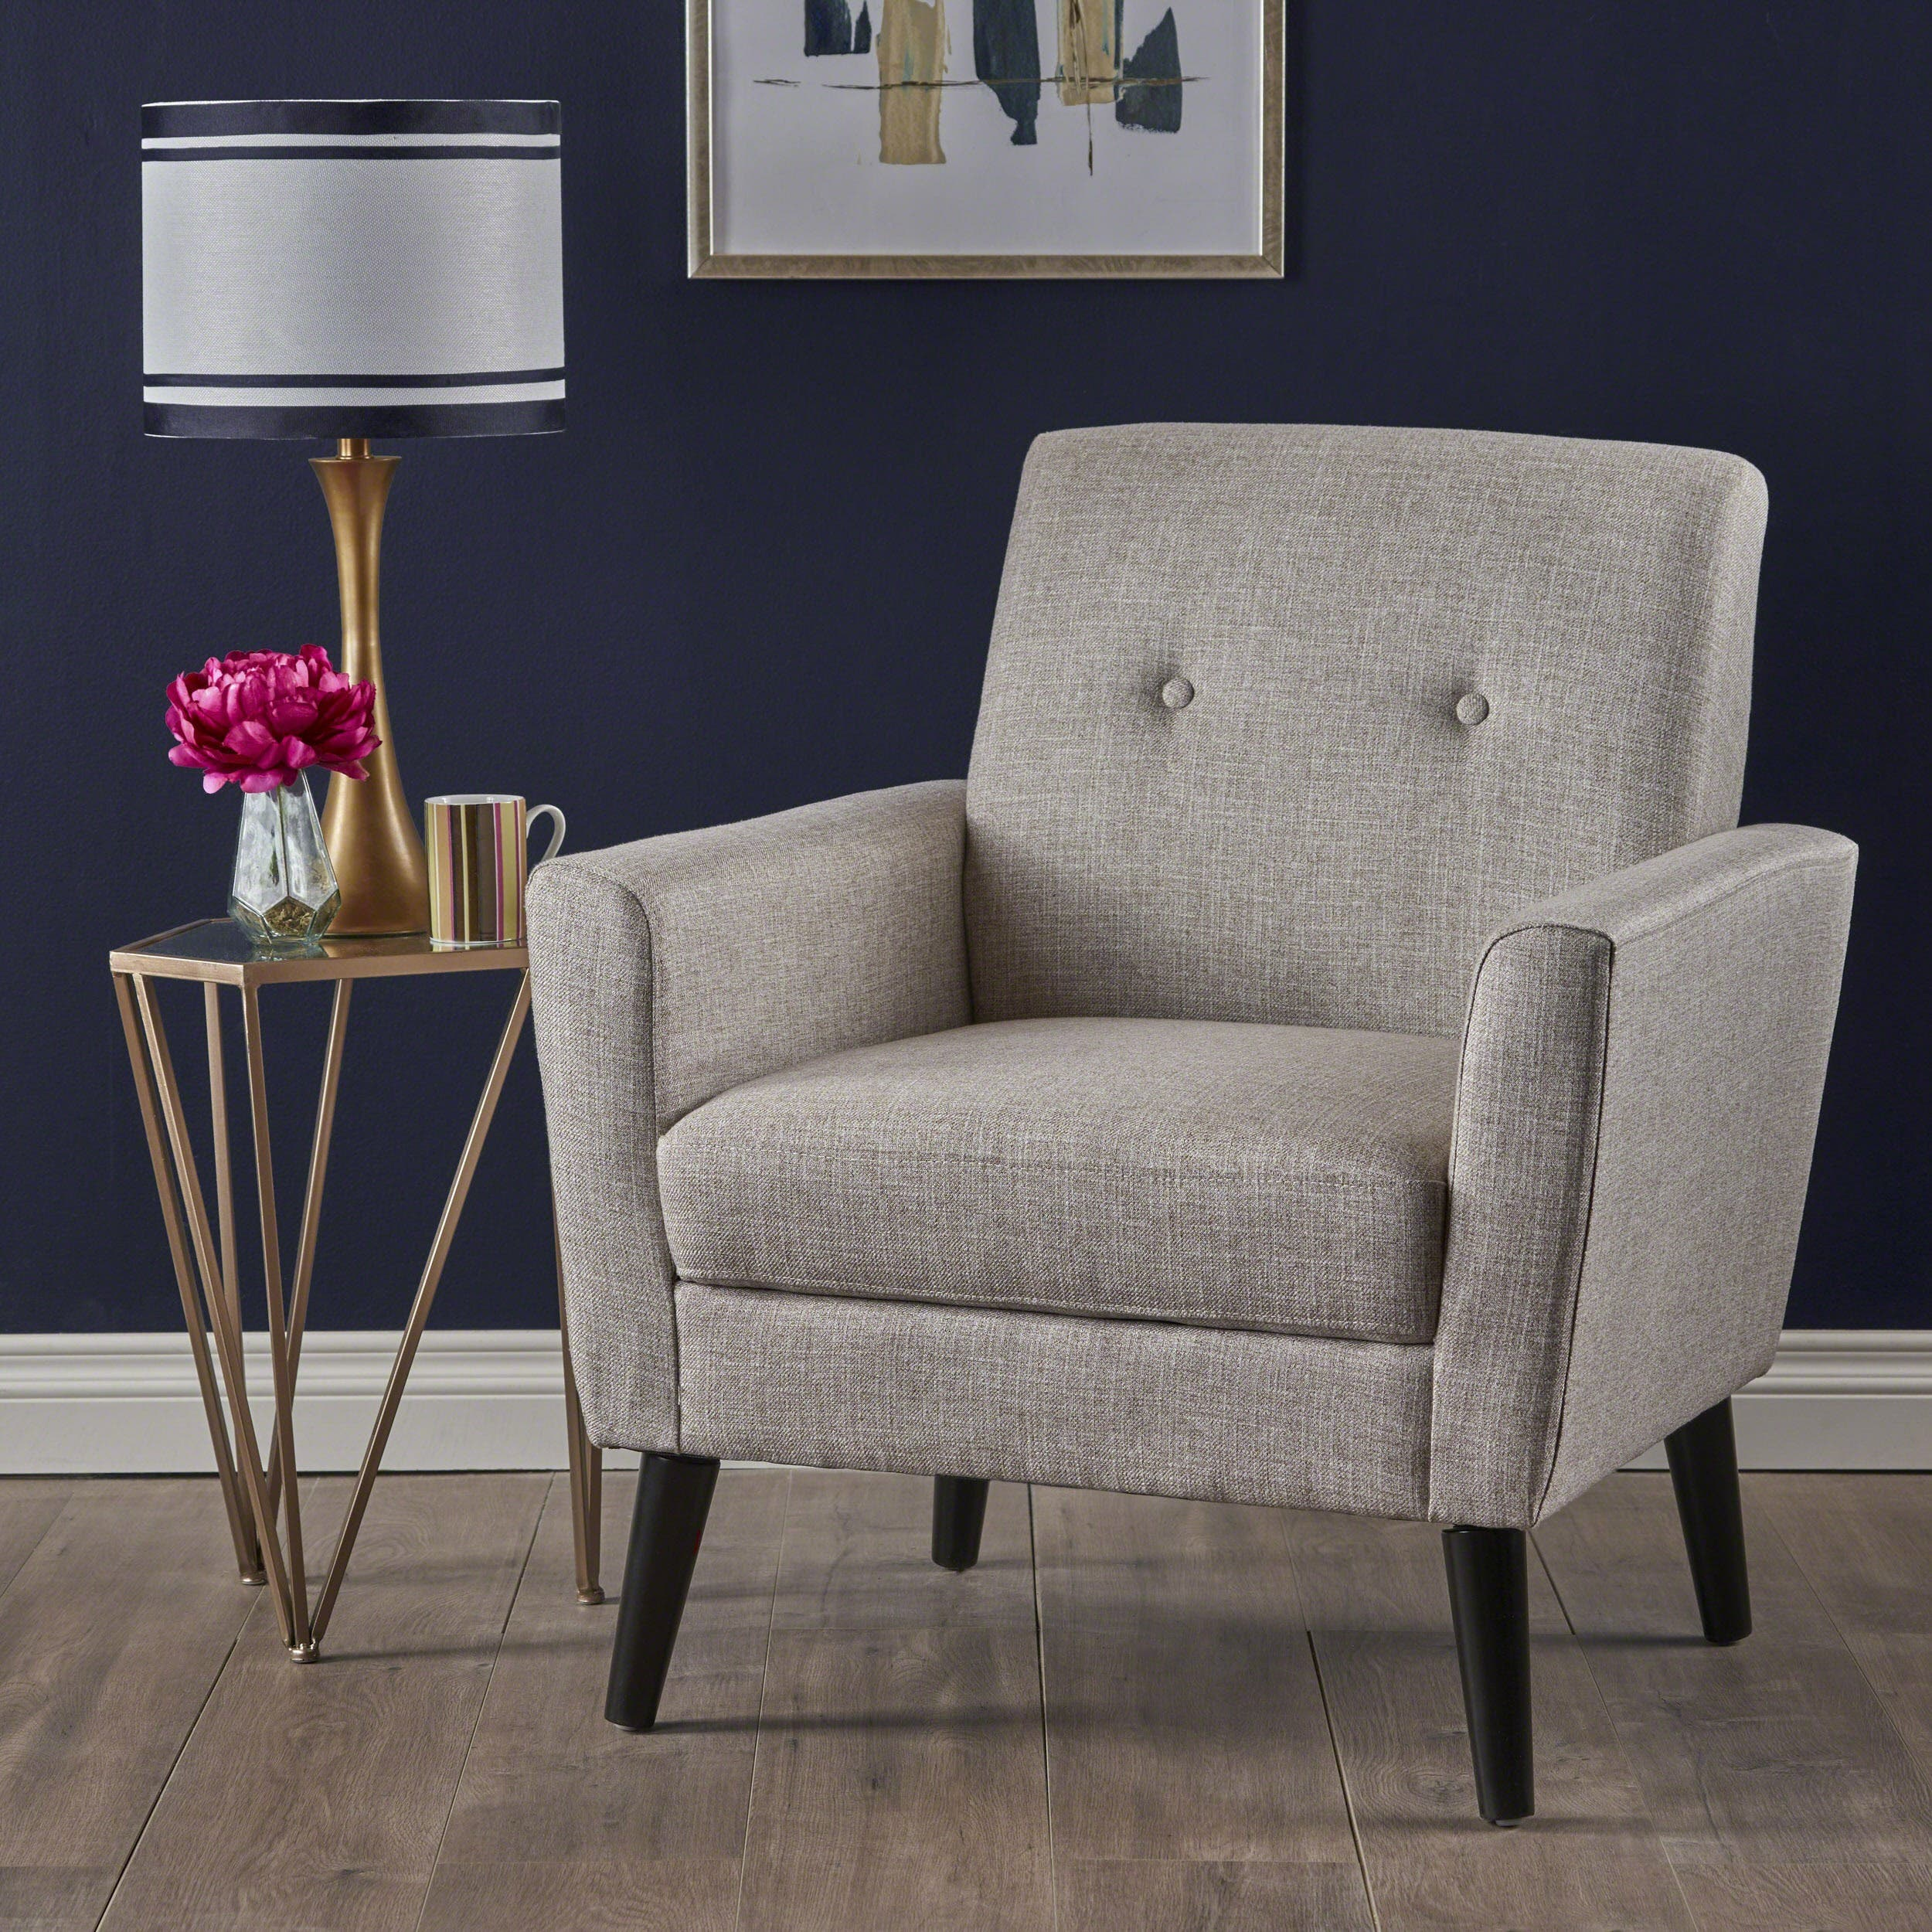 Living room chairs for less for Living room furniture 0 finance